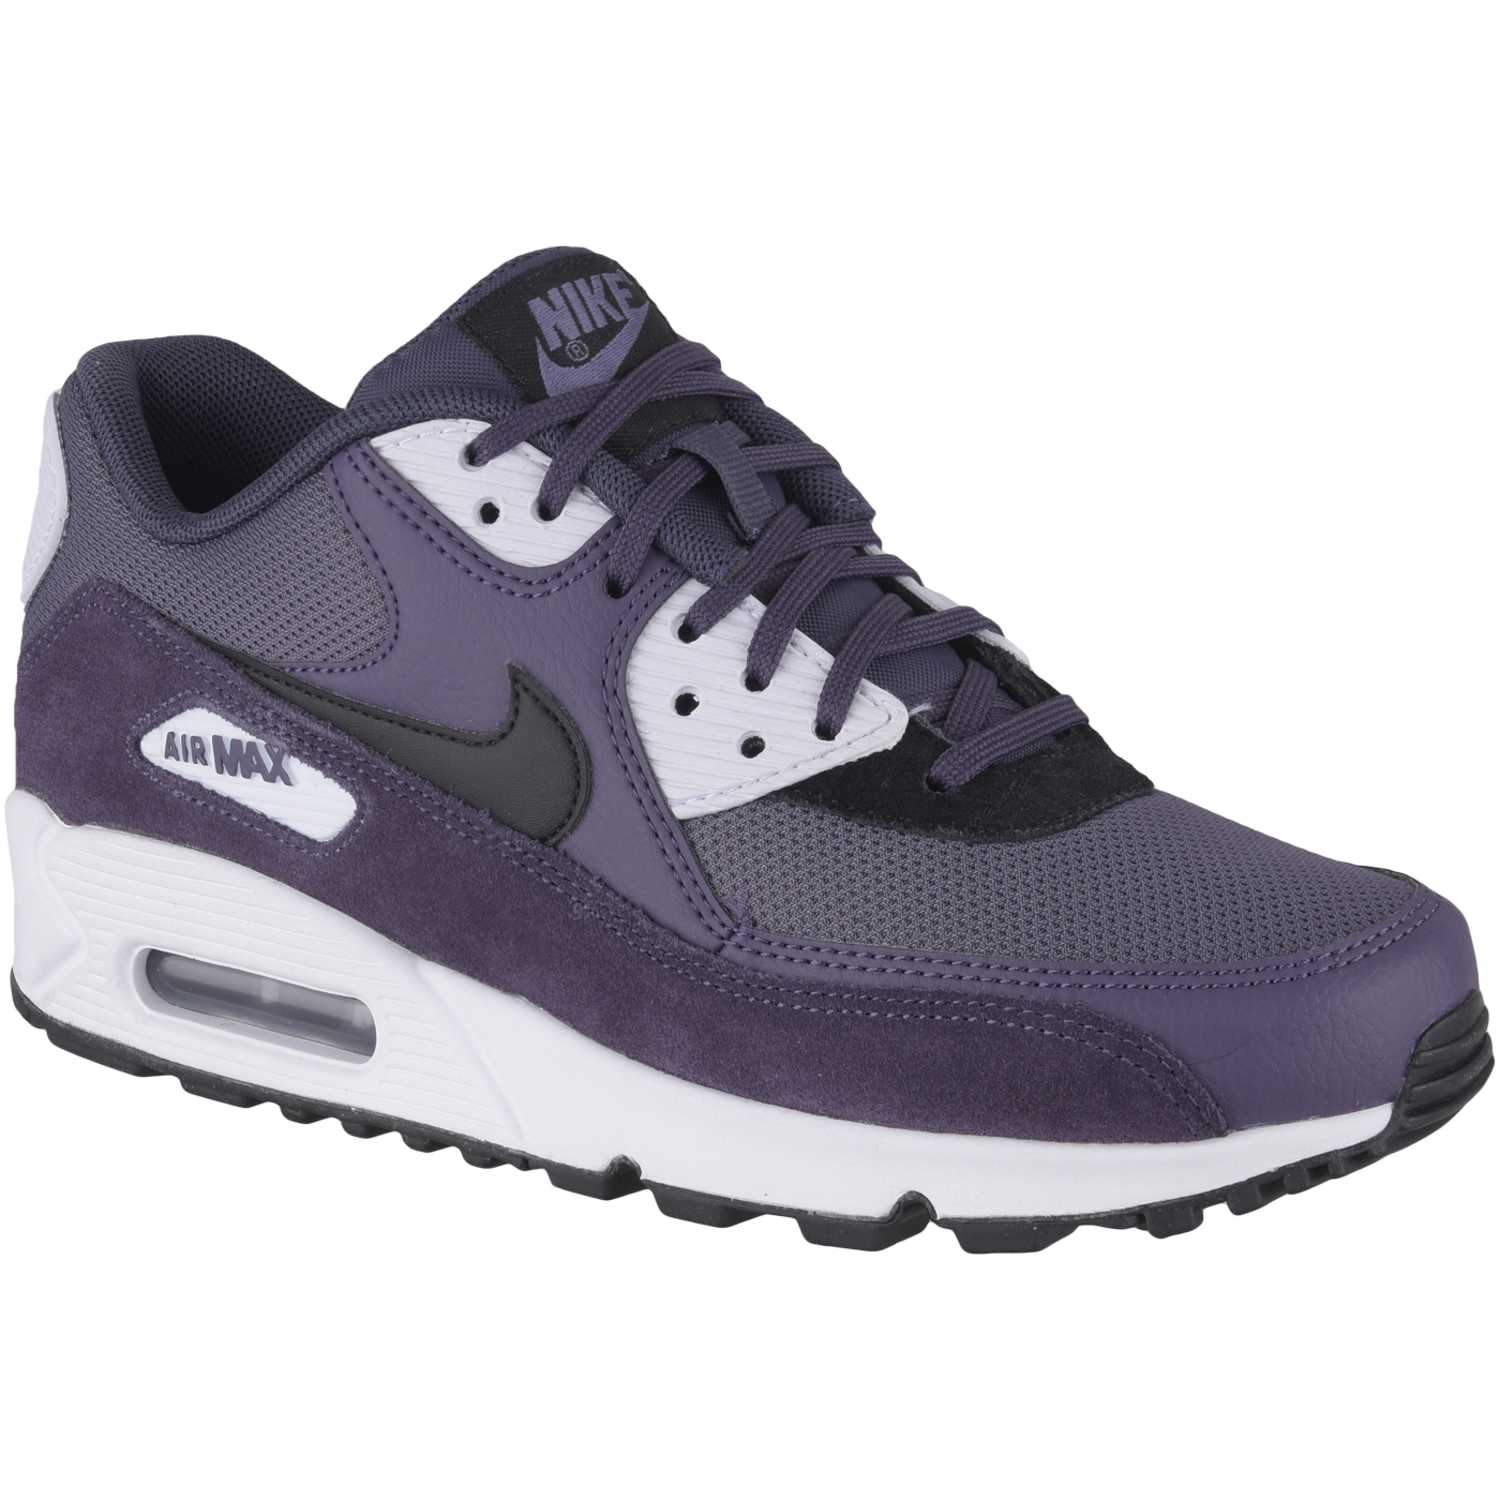 sports shoes 1c83a 9354b ... amazon zapatilla de mujer nike morado blanco wmns air max 90 le fe308  161fb